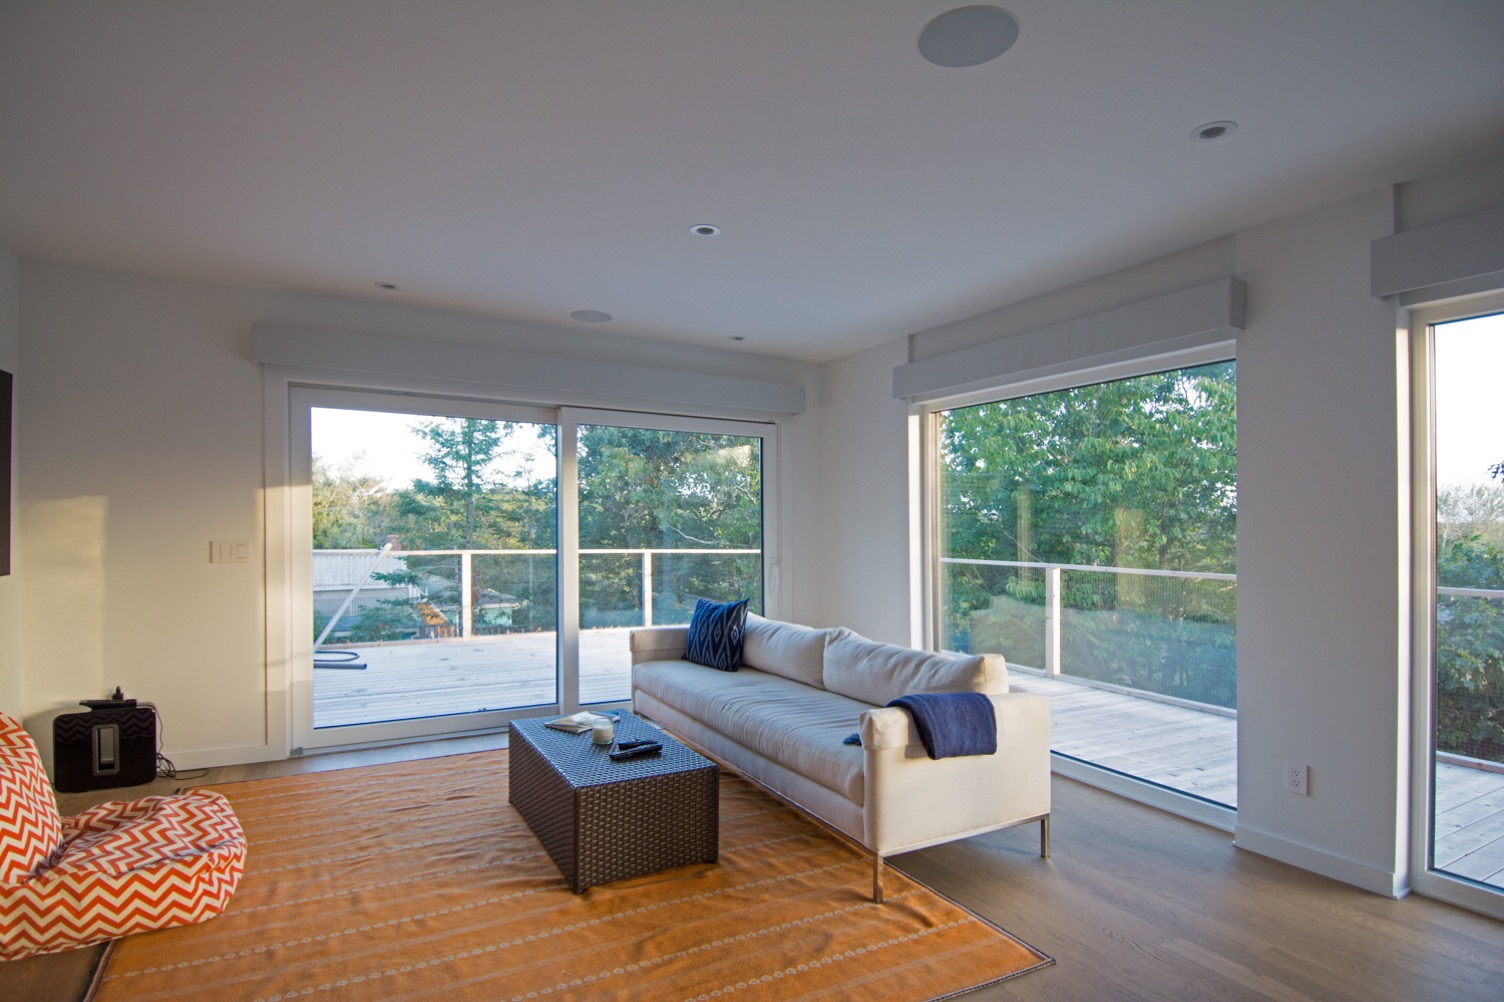 Living room with expansive views